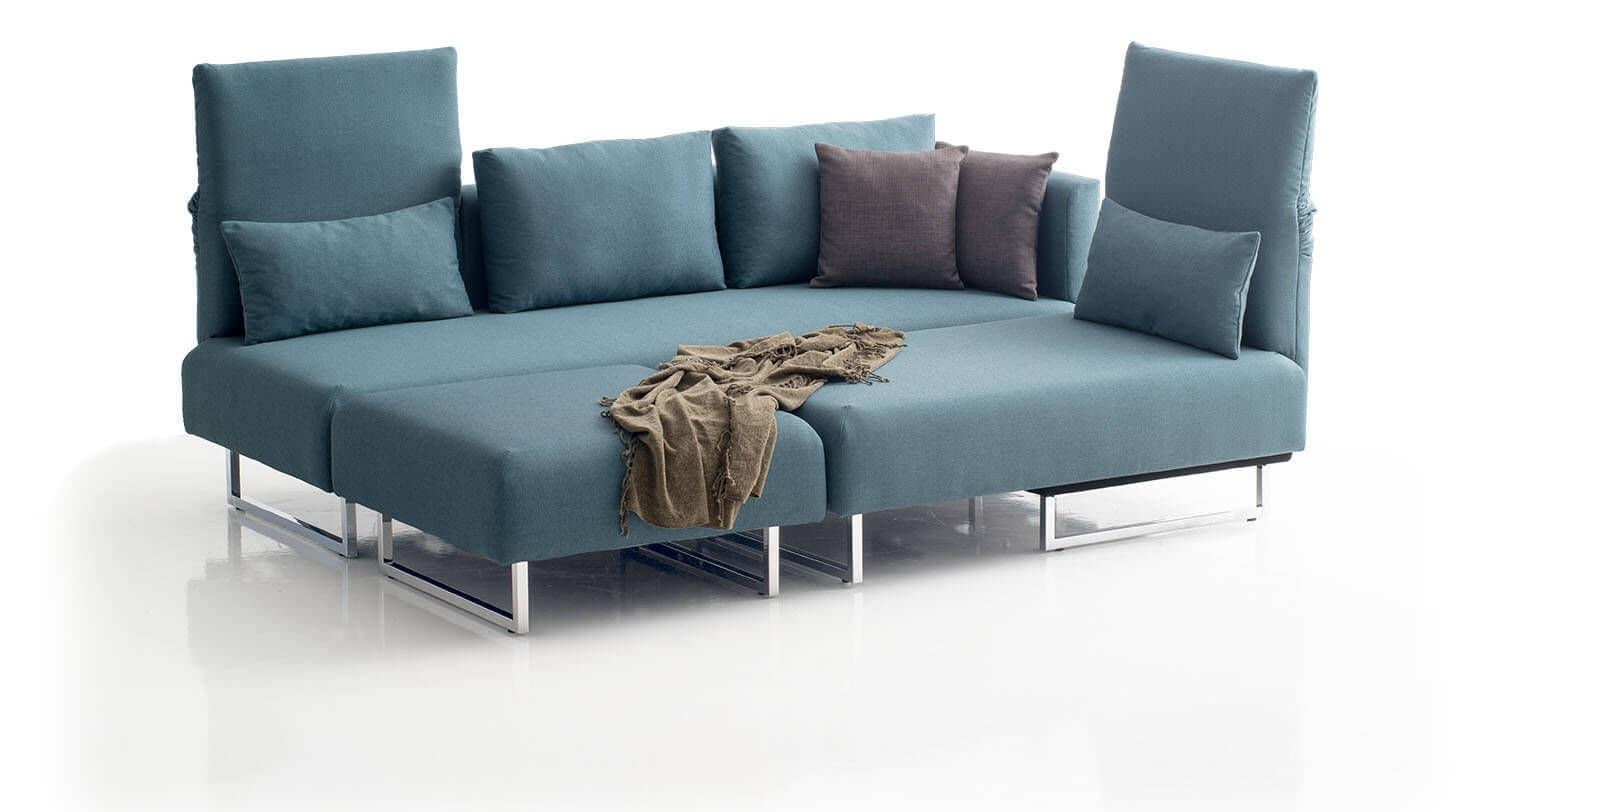 Sofas Center : Urban Modular Sofacalligaris Daybeds Yliving Pertaining To Small Modular Sofas (View 8 of 20)